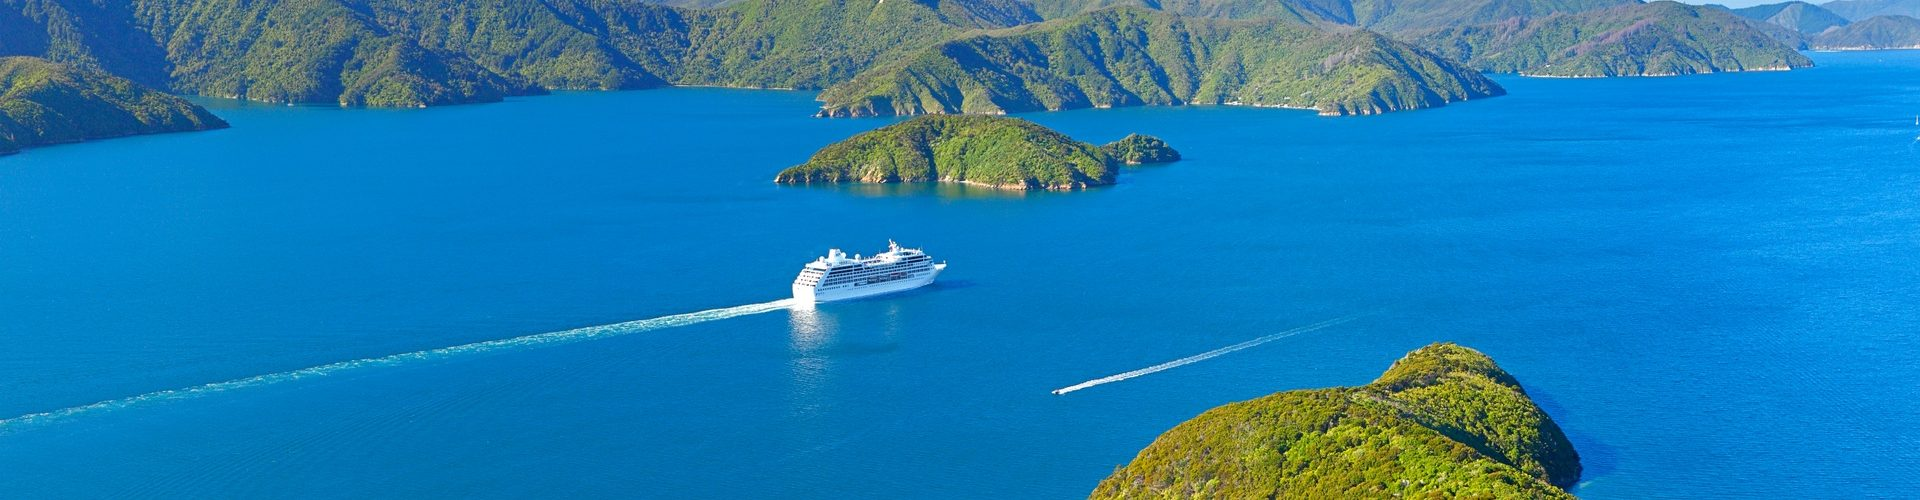 Cruise ship in Marlborough Sounds, New Zealand. credit Rob Suisted